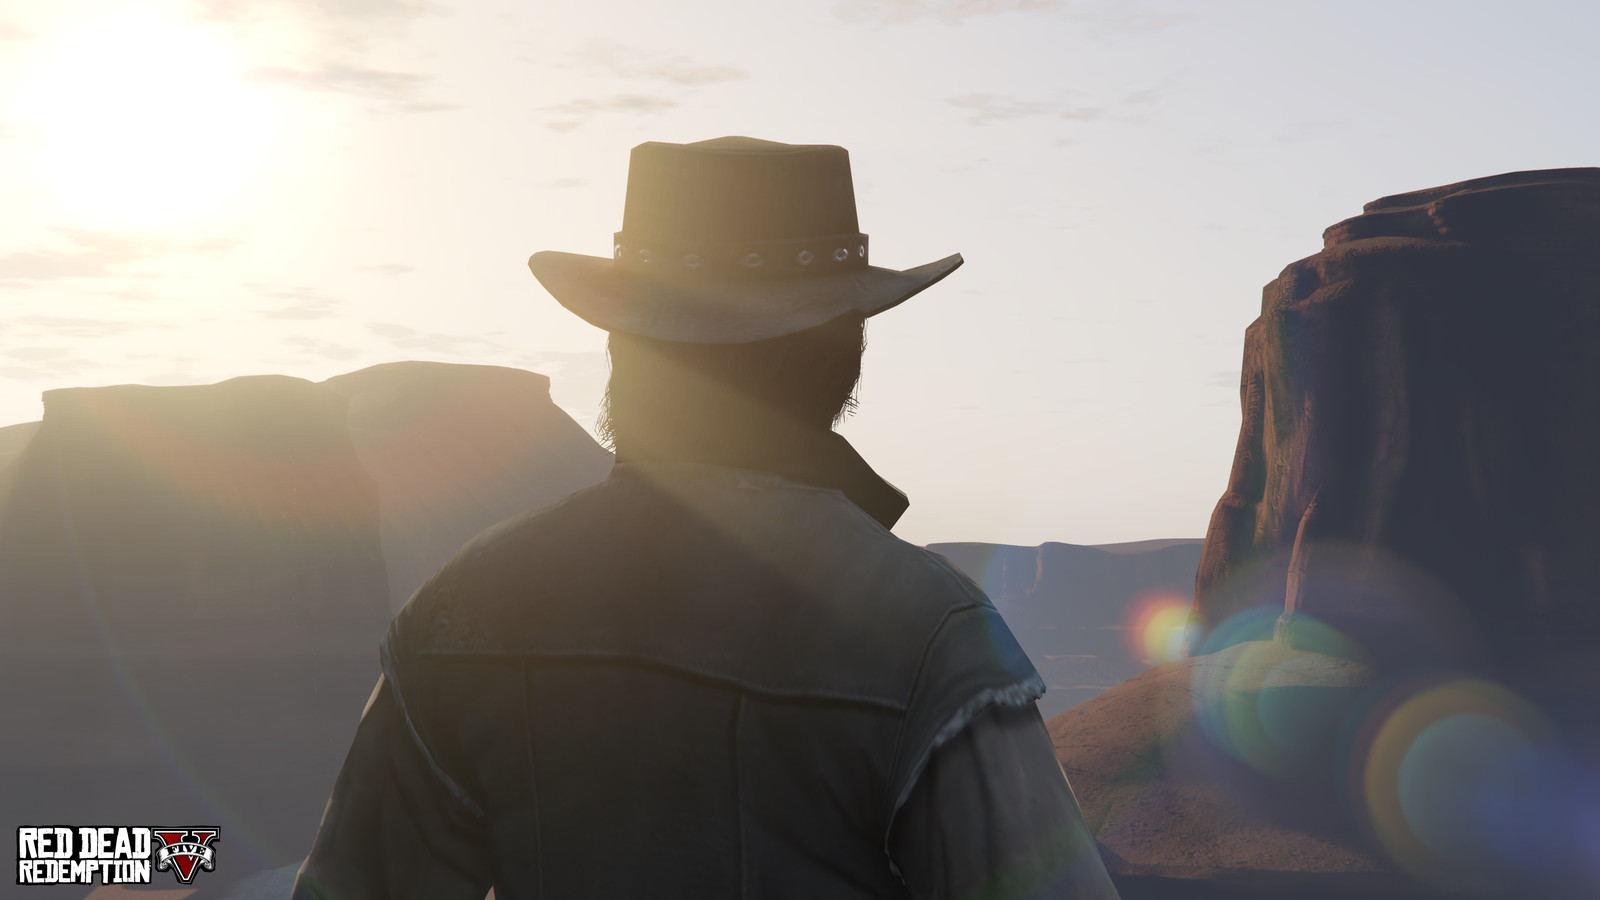 Bid to bring RDR into GTA ends with C&D